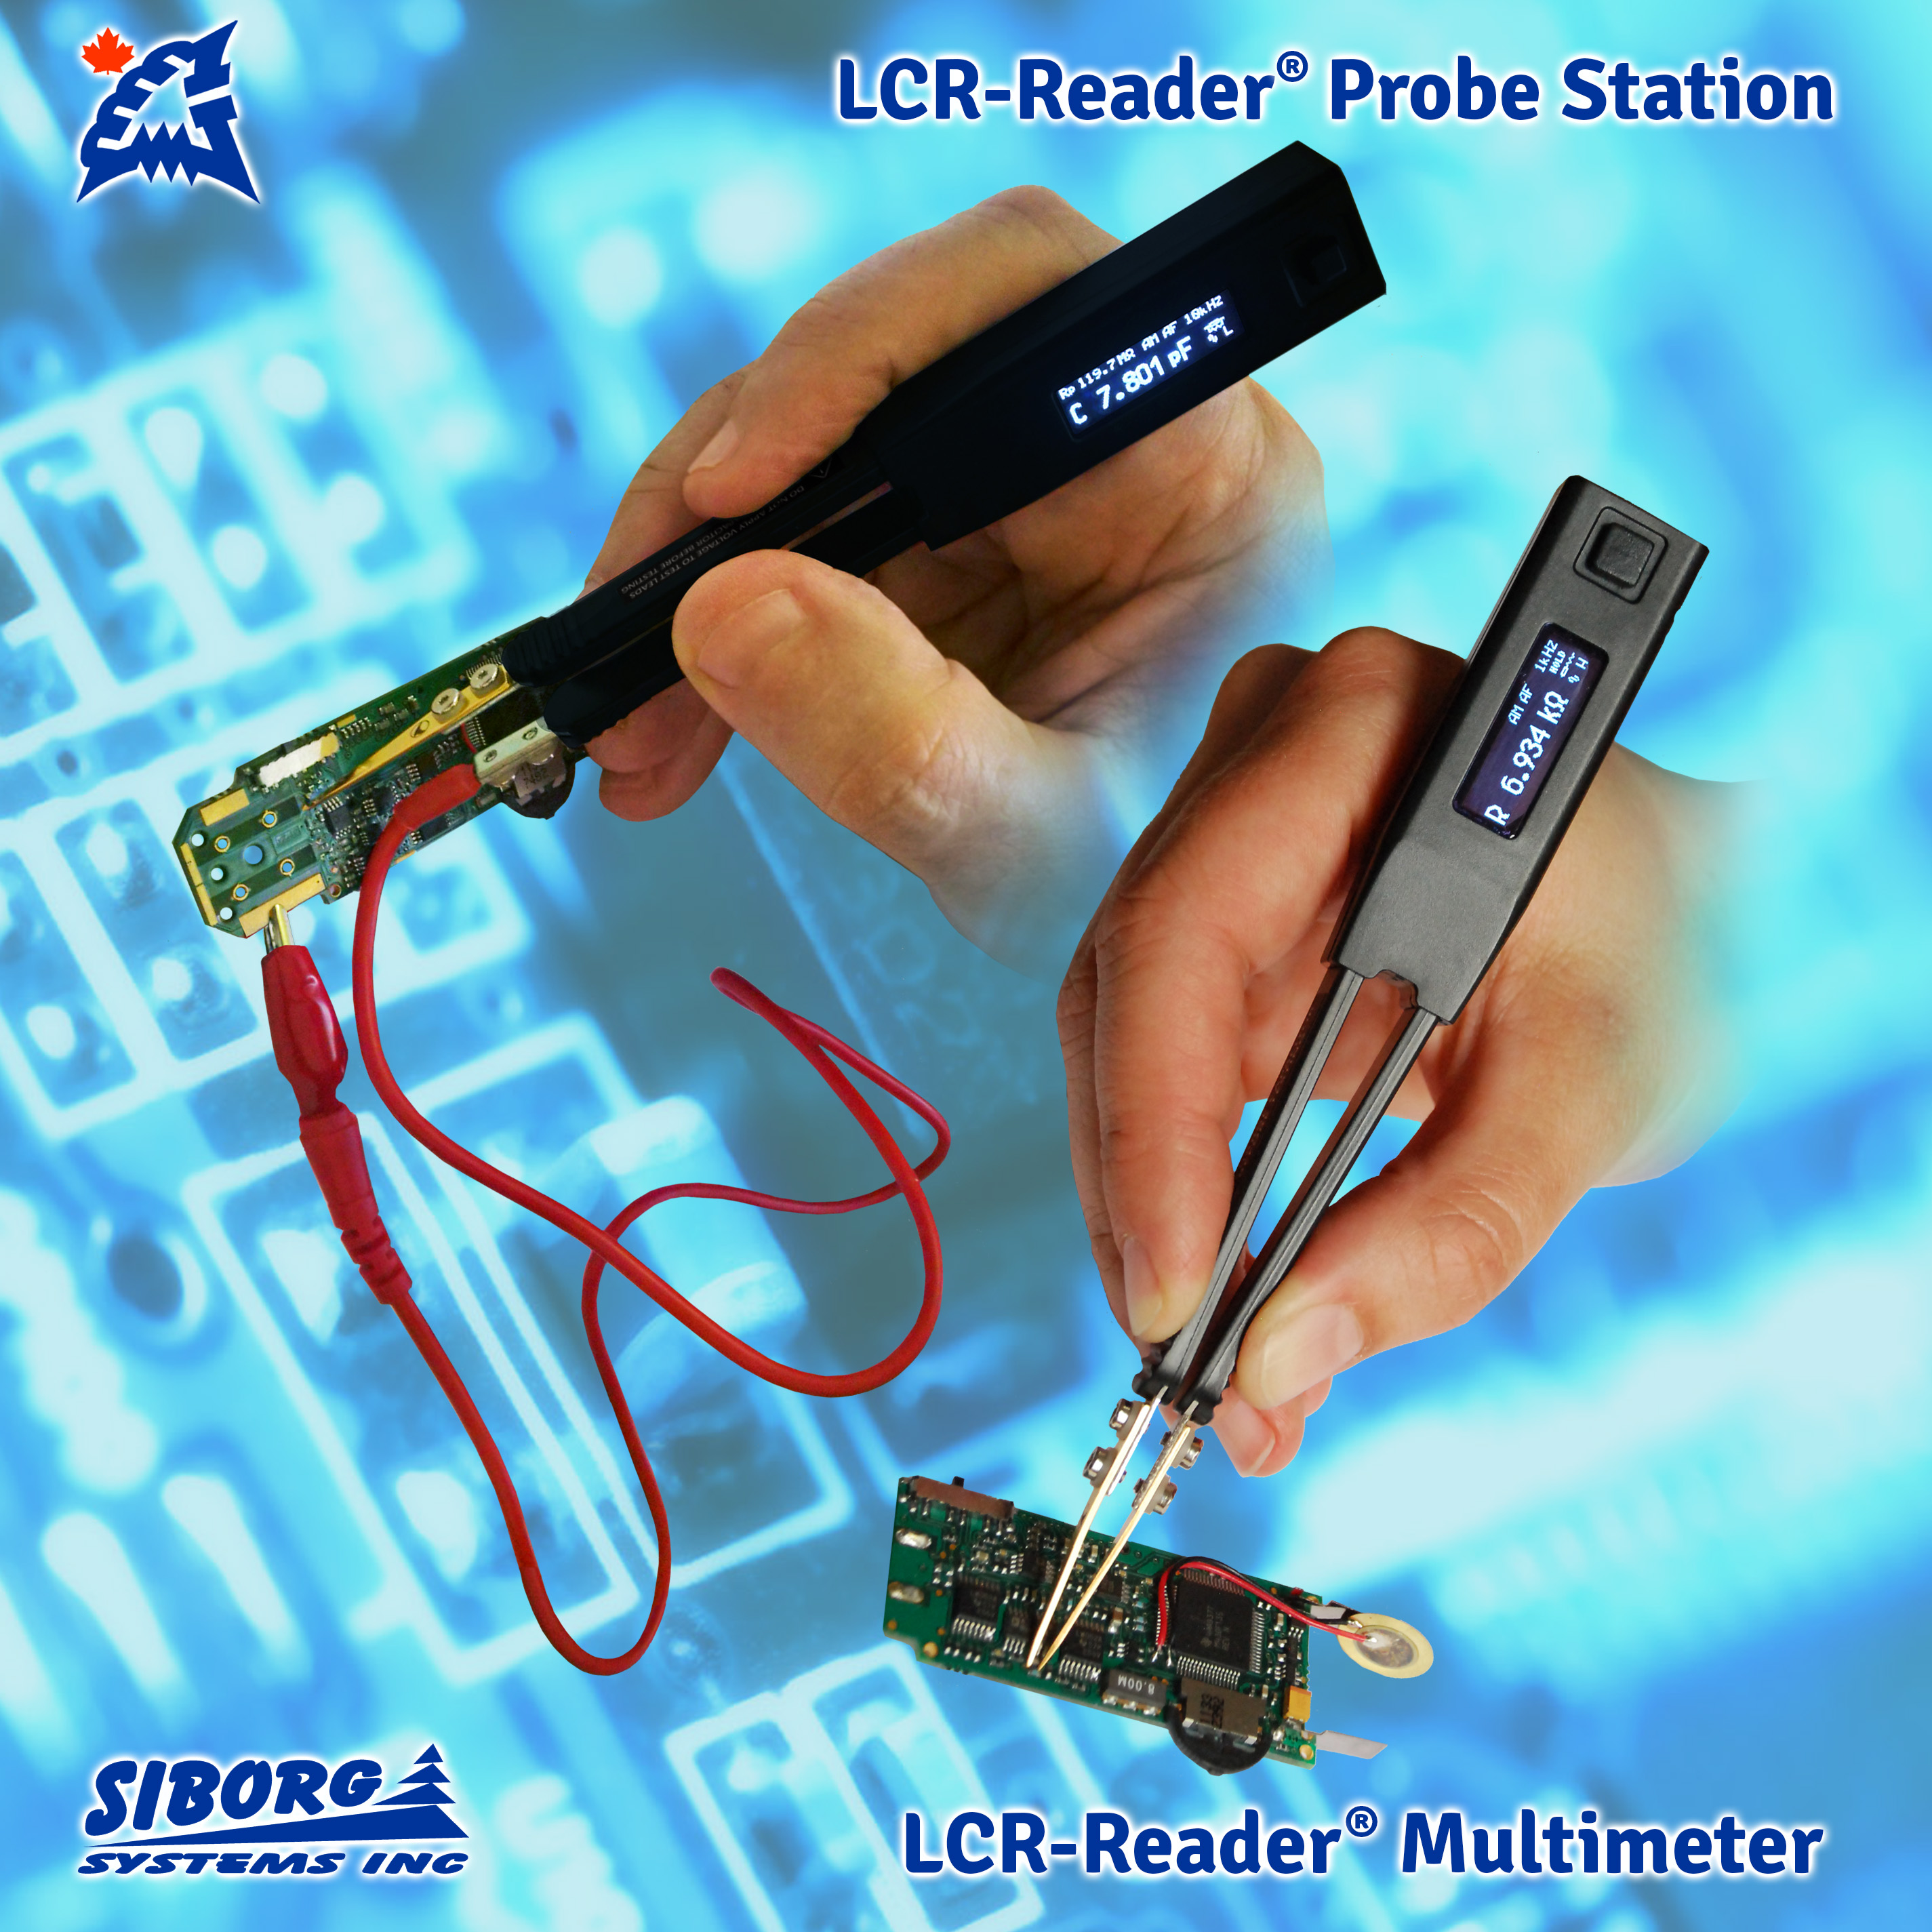 Smart Tweezers and LCR-Reader Probe Connector for complete PCB probing